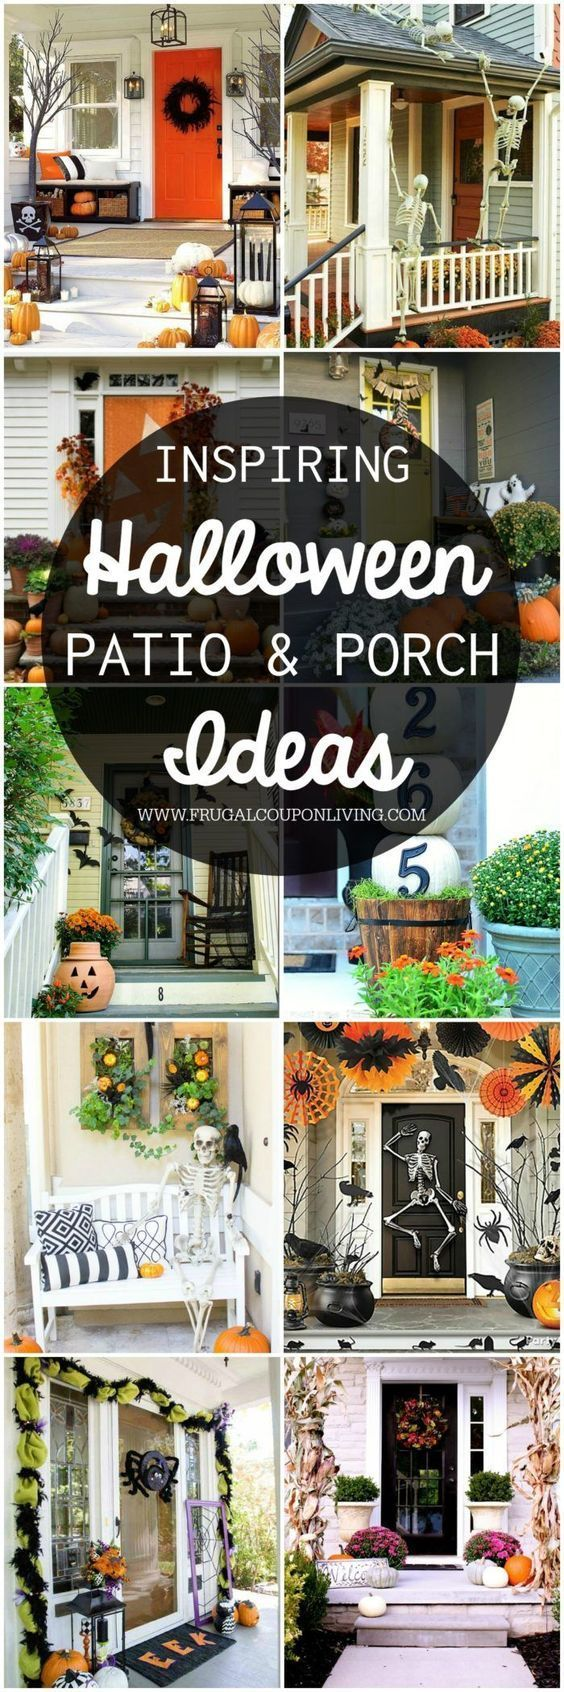 Boo-tiful Porch Halloween Ideas and Patio Inspiration - Inspiring Porch Halloween Ideas and Patio Inspiration for the October season. Outdoor Home Decorating Ideas to give you a friendly or scary Halloween home decor on Frugal Coupon Living.